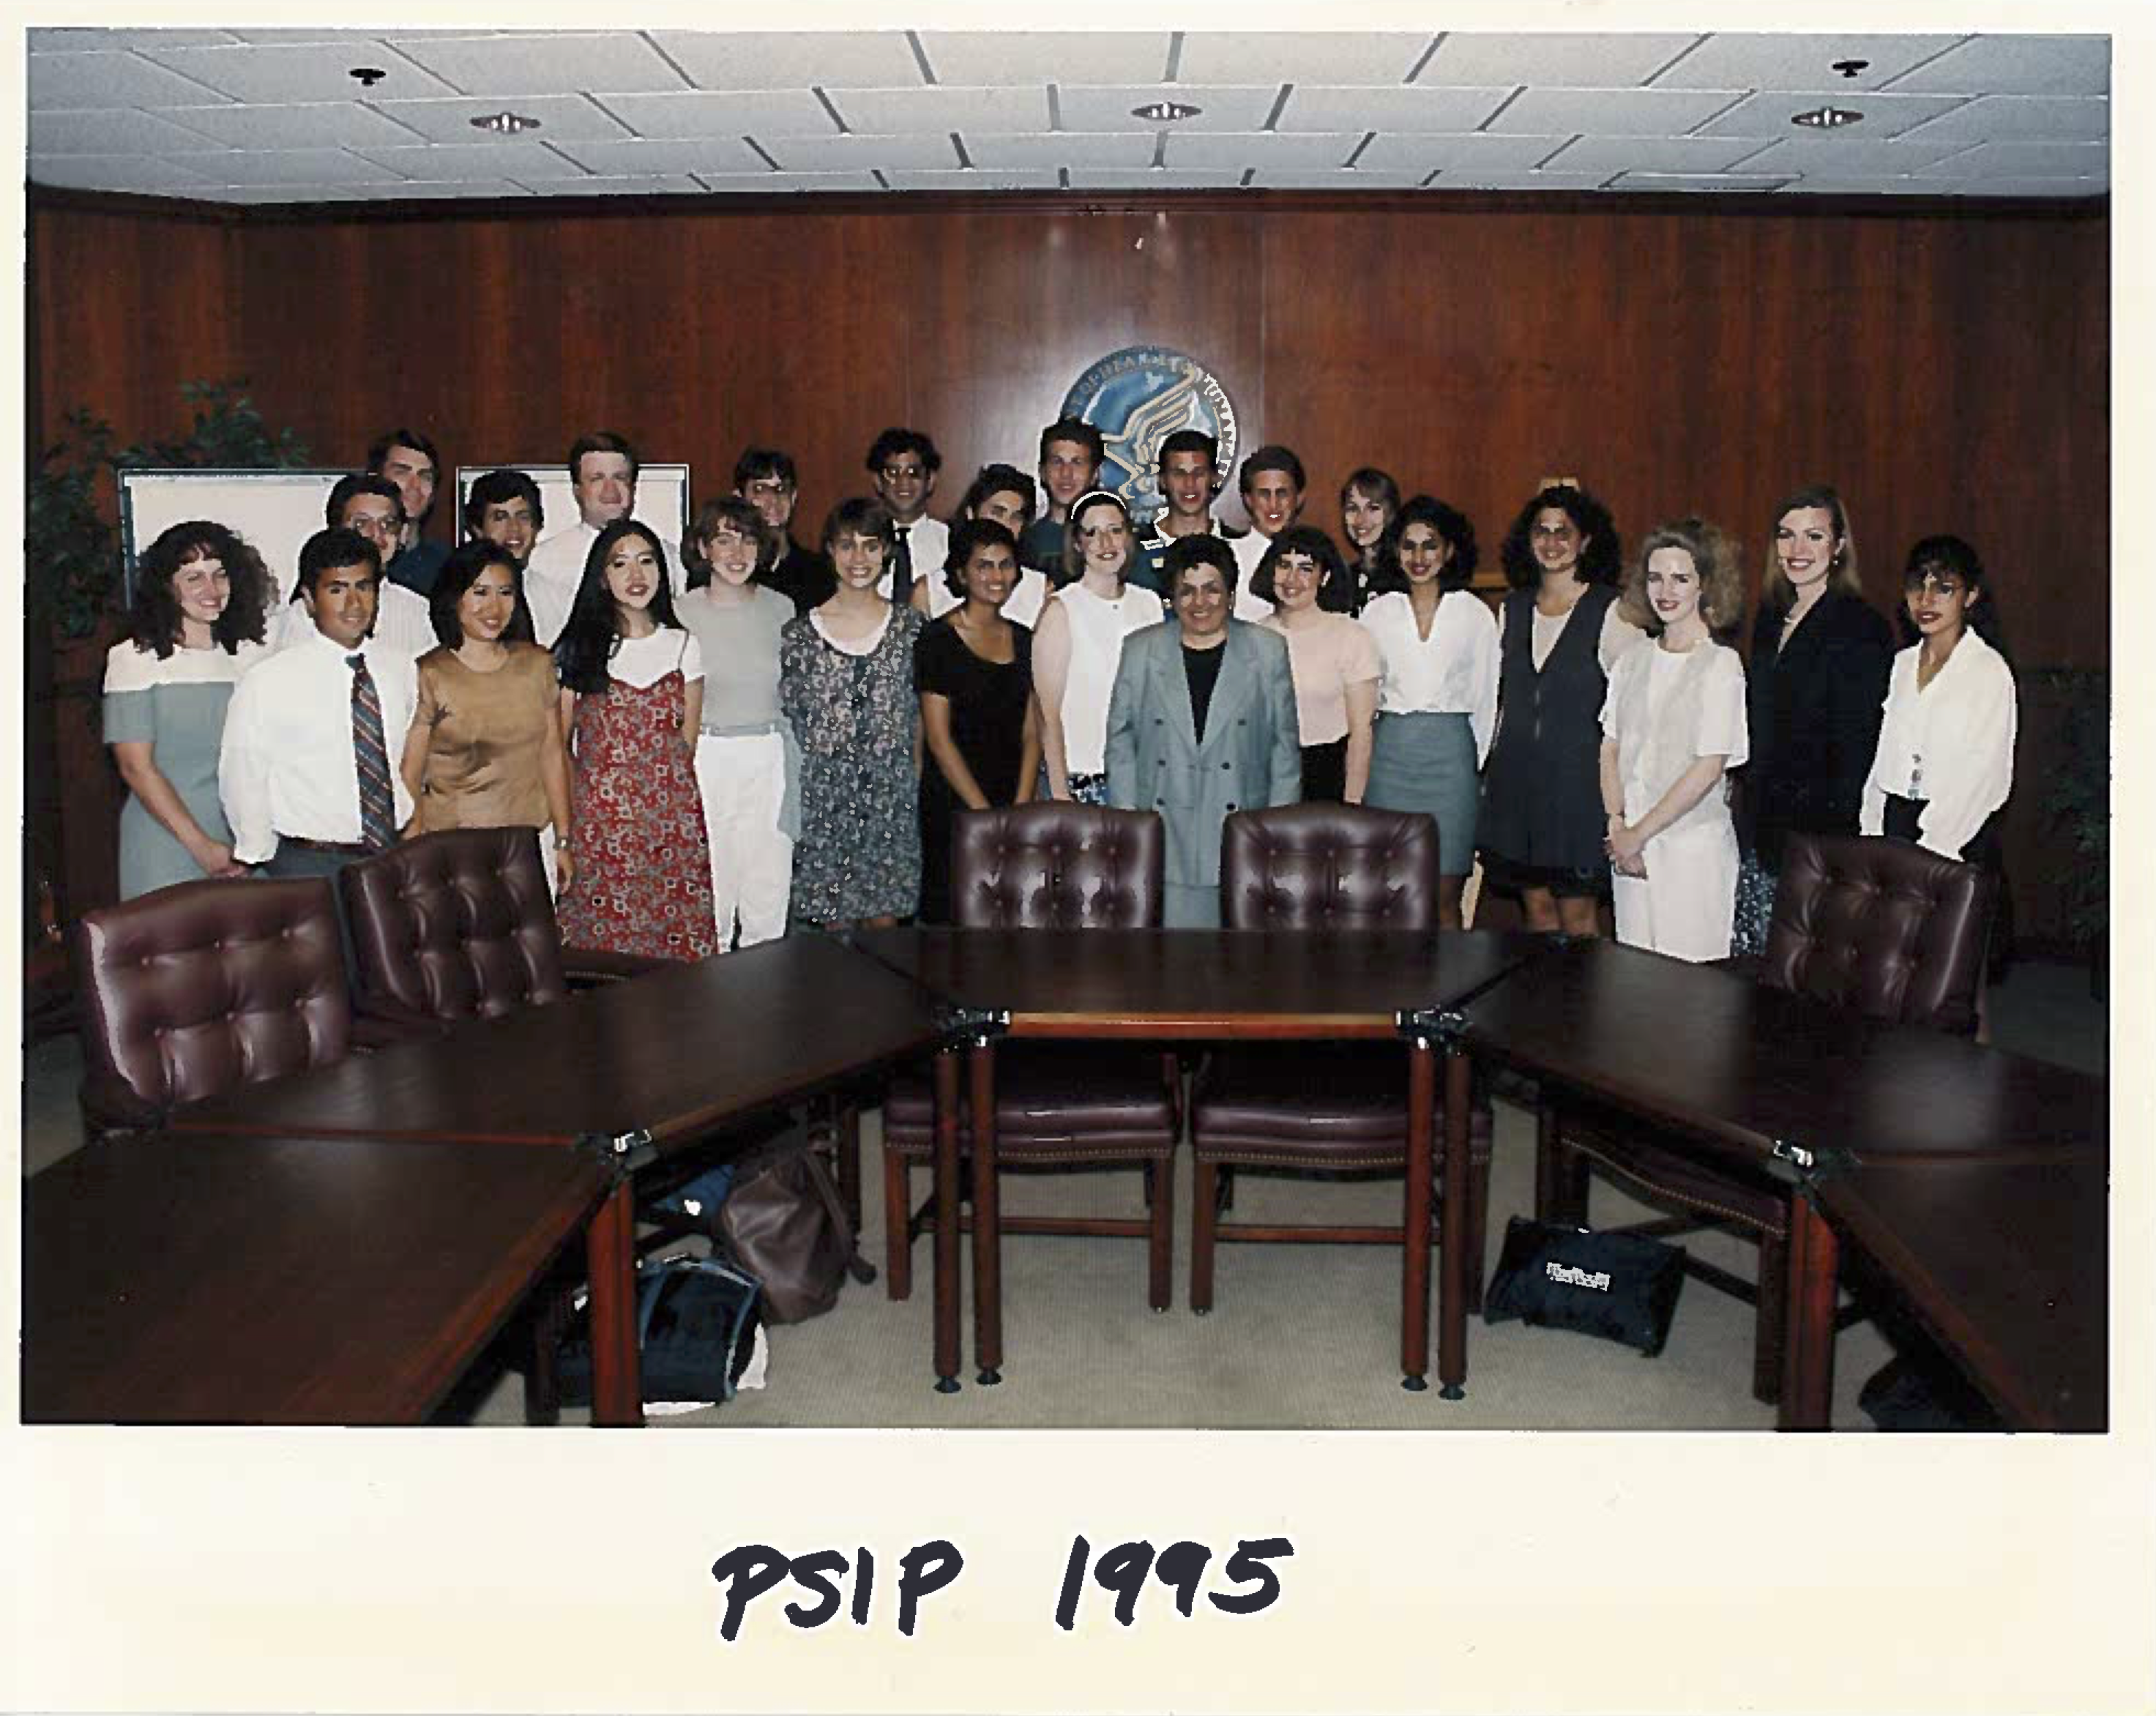 PSIP students standing together behind some chairs and desks